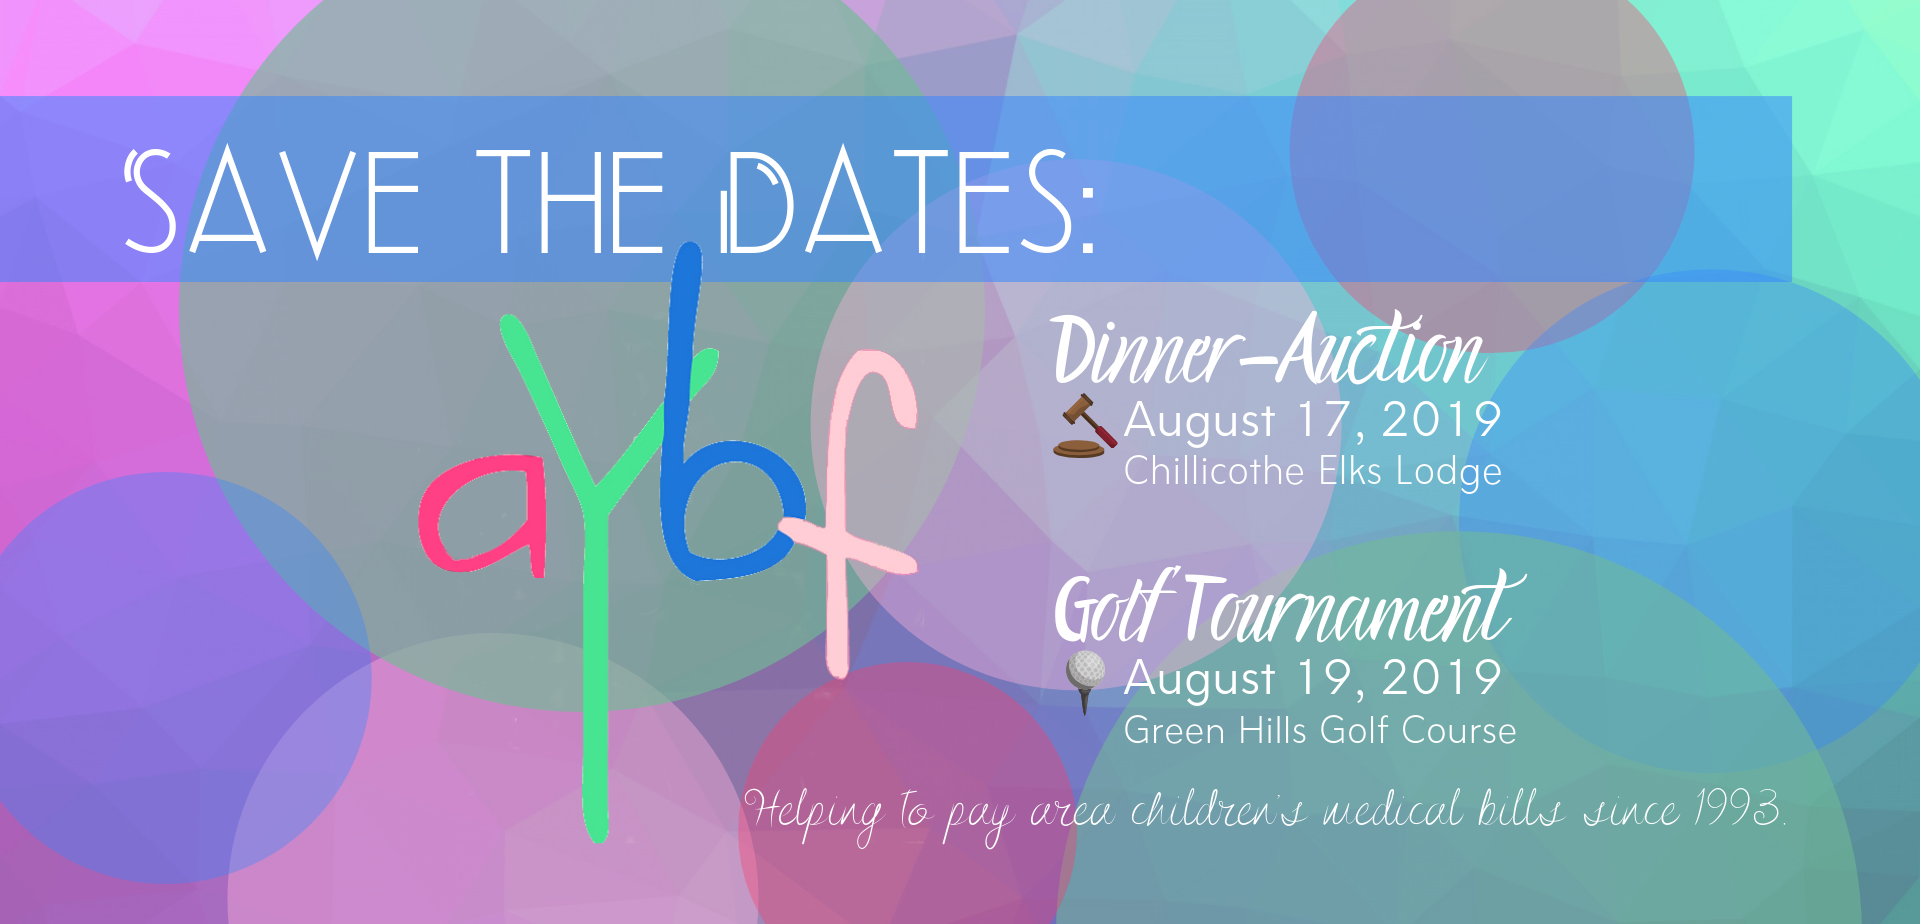 AYBF Save the Dates!